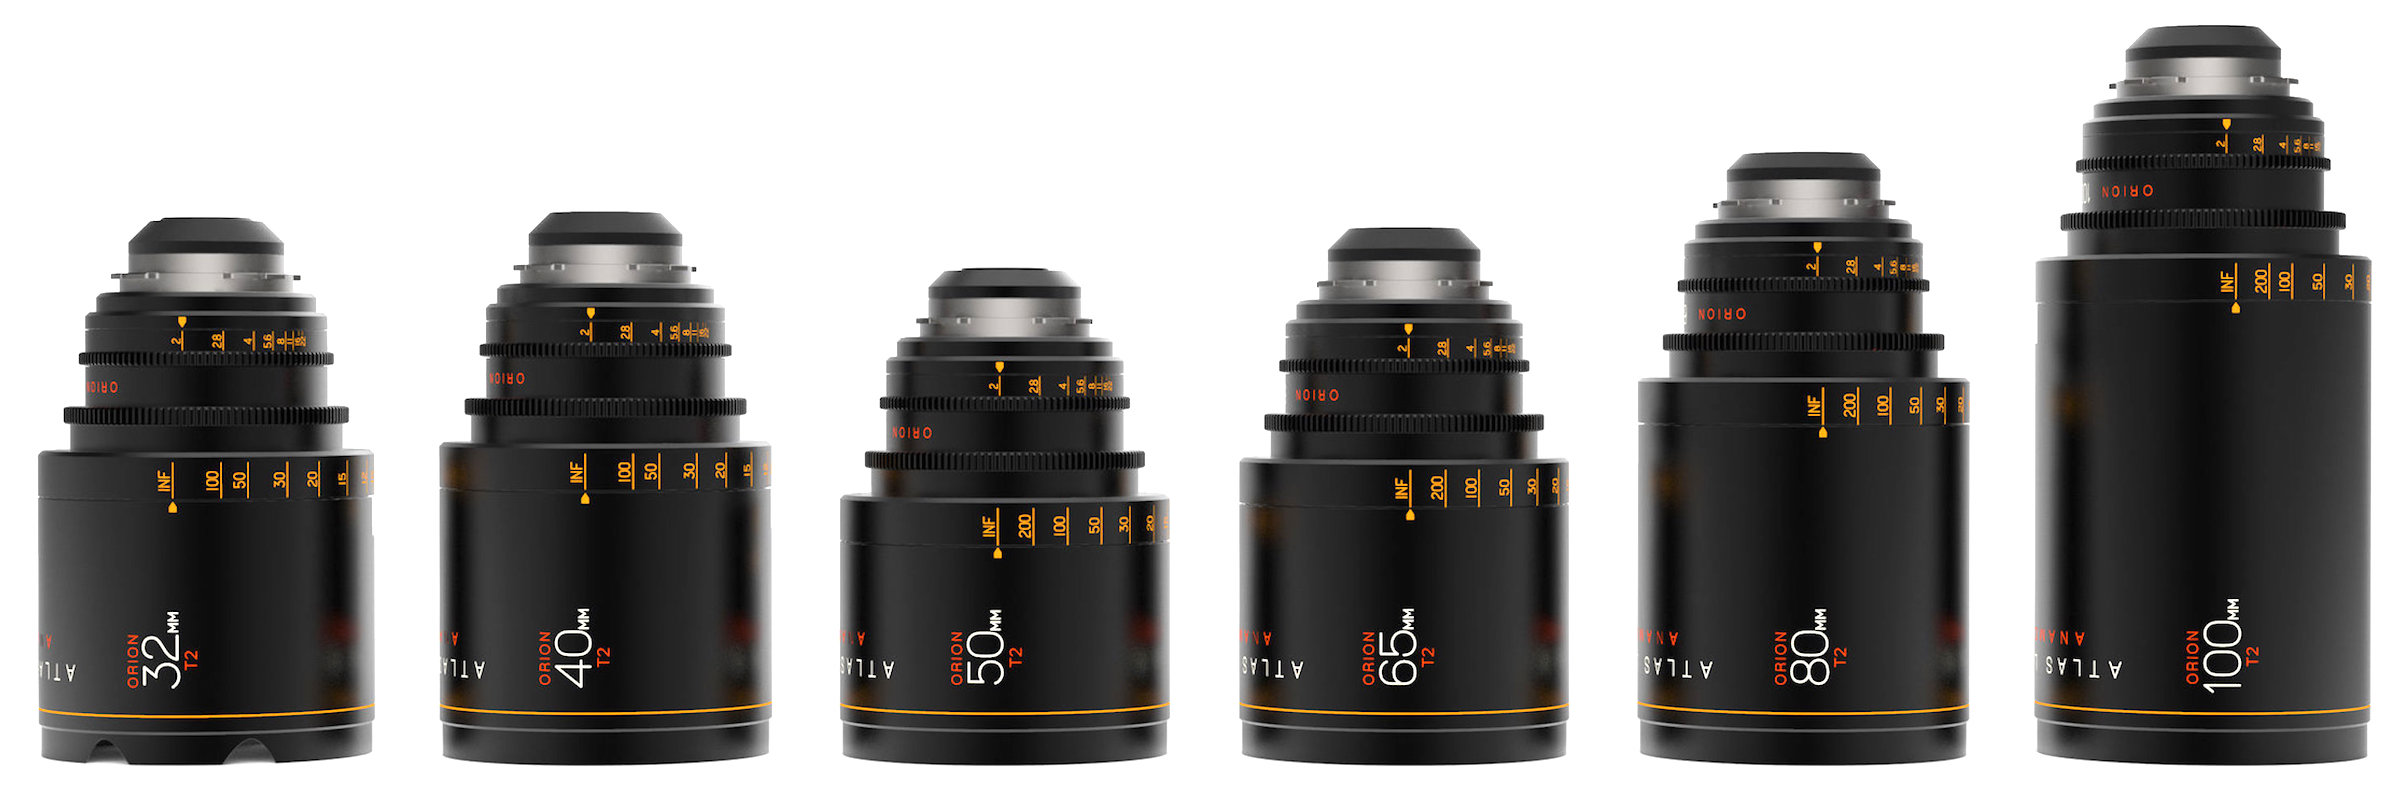 ATLAS 2X ANAMORPHIC T2.0 SET   40mm, 65mm, 100mm initial set - More Focal lengths coming soon!